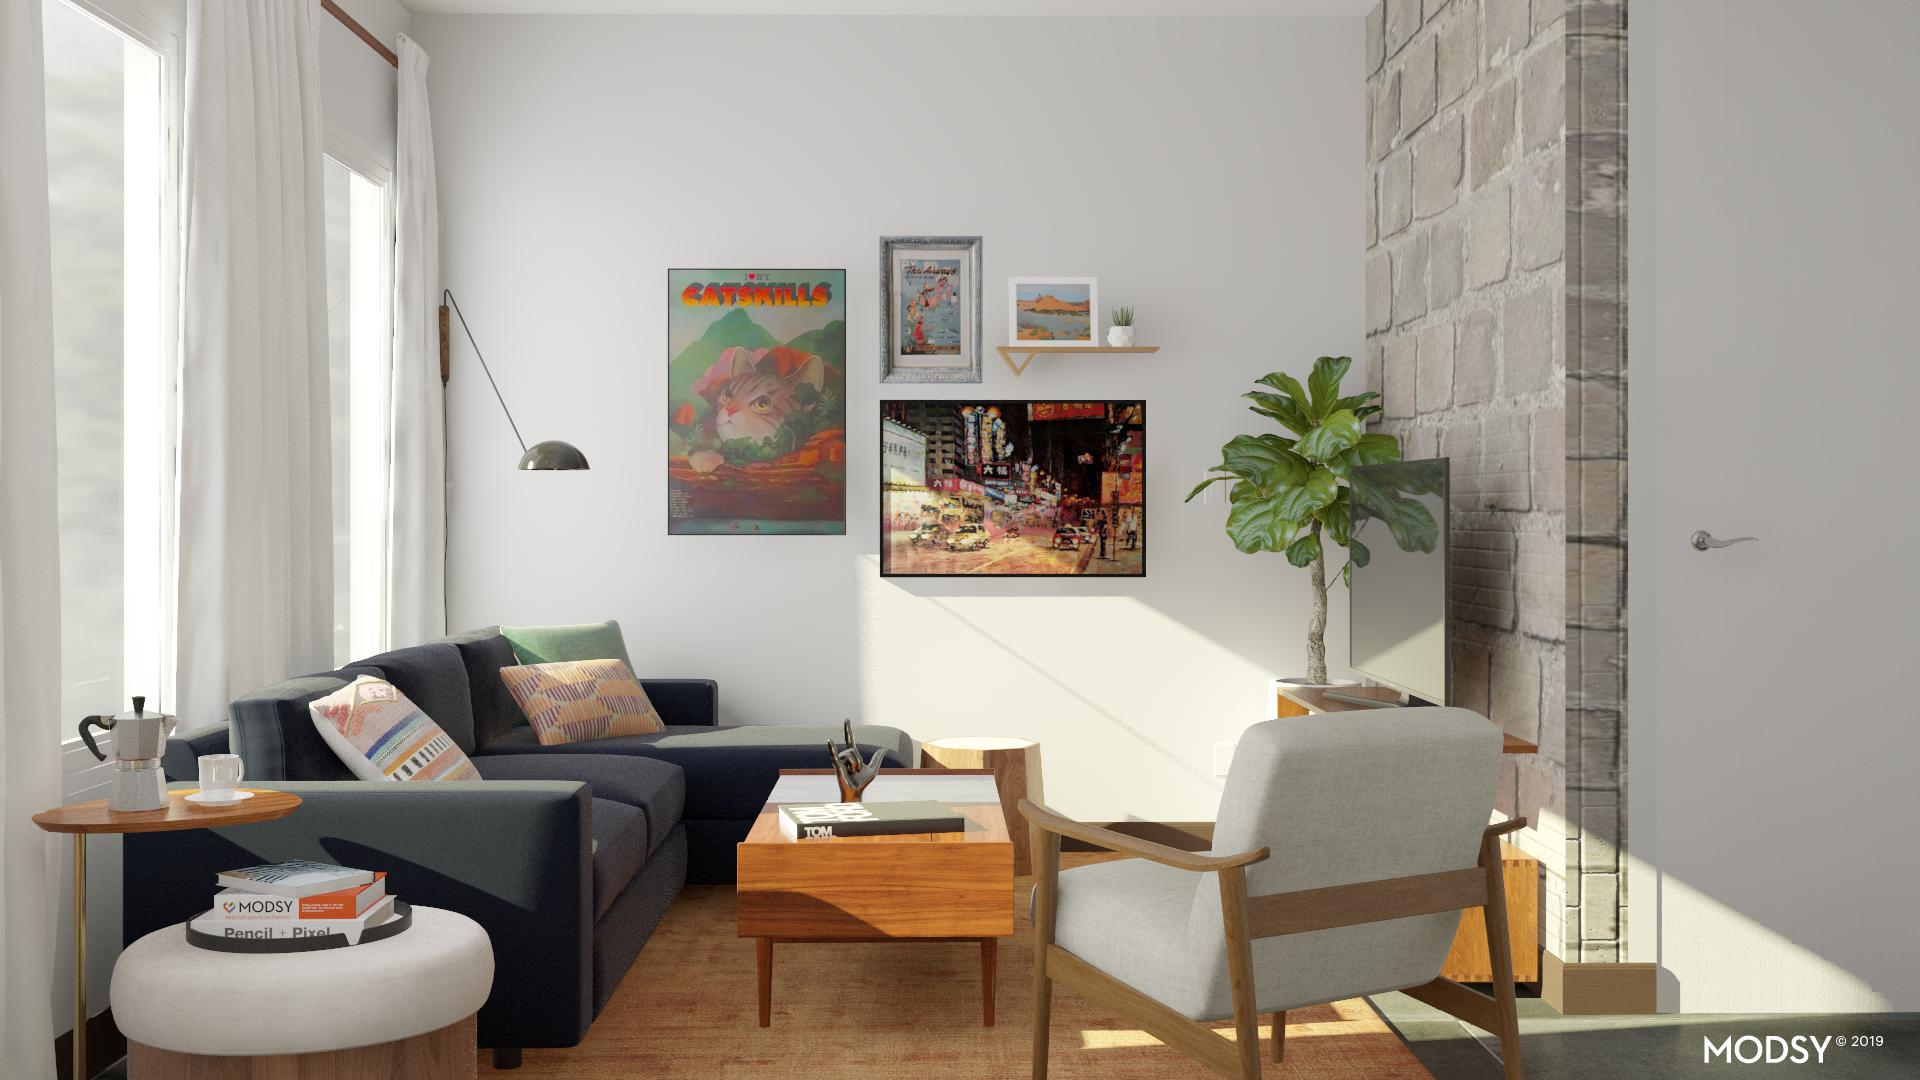 Virtual home makeover: testing Modsy, Havenly, Ikea on my